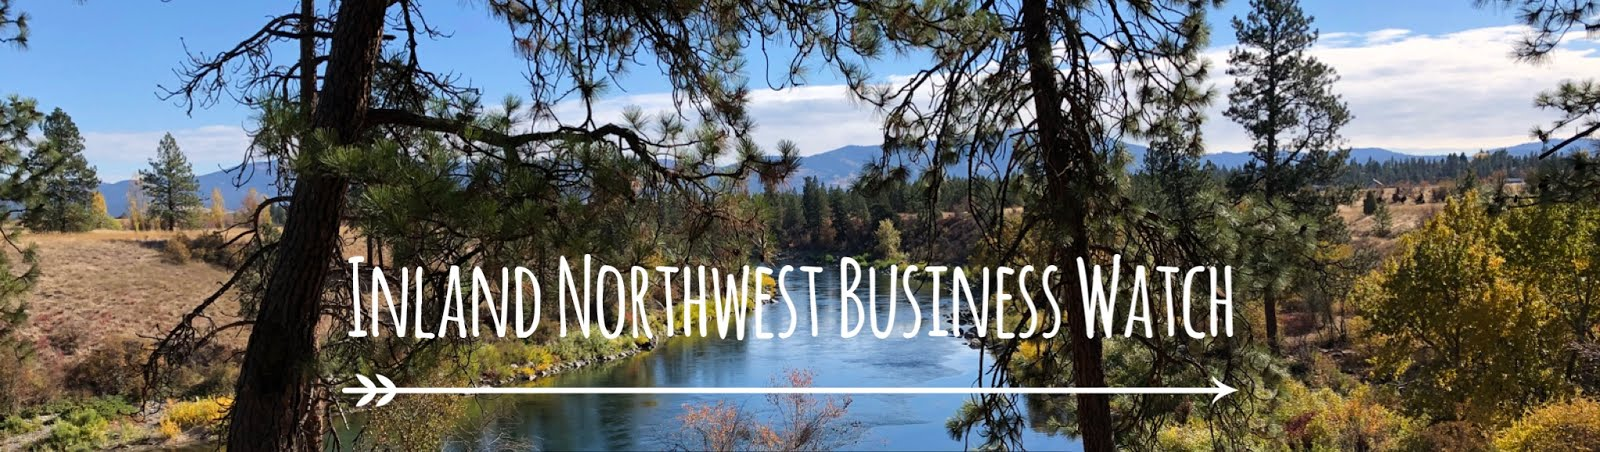 Inland Northwest Business Watch